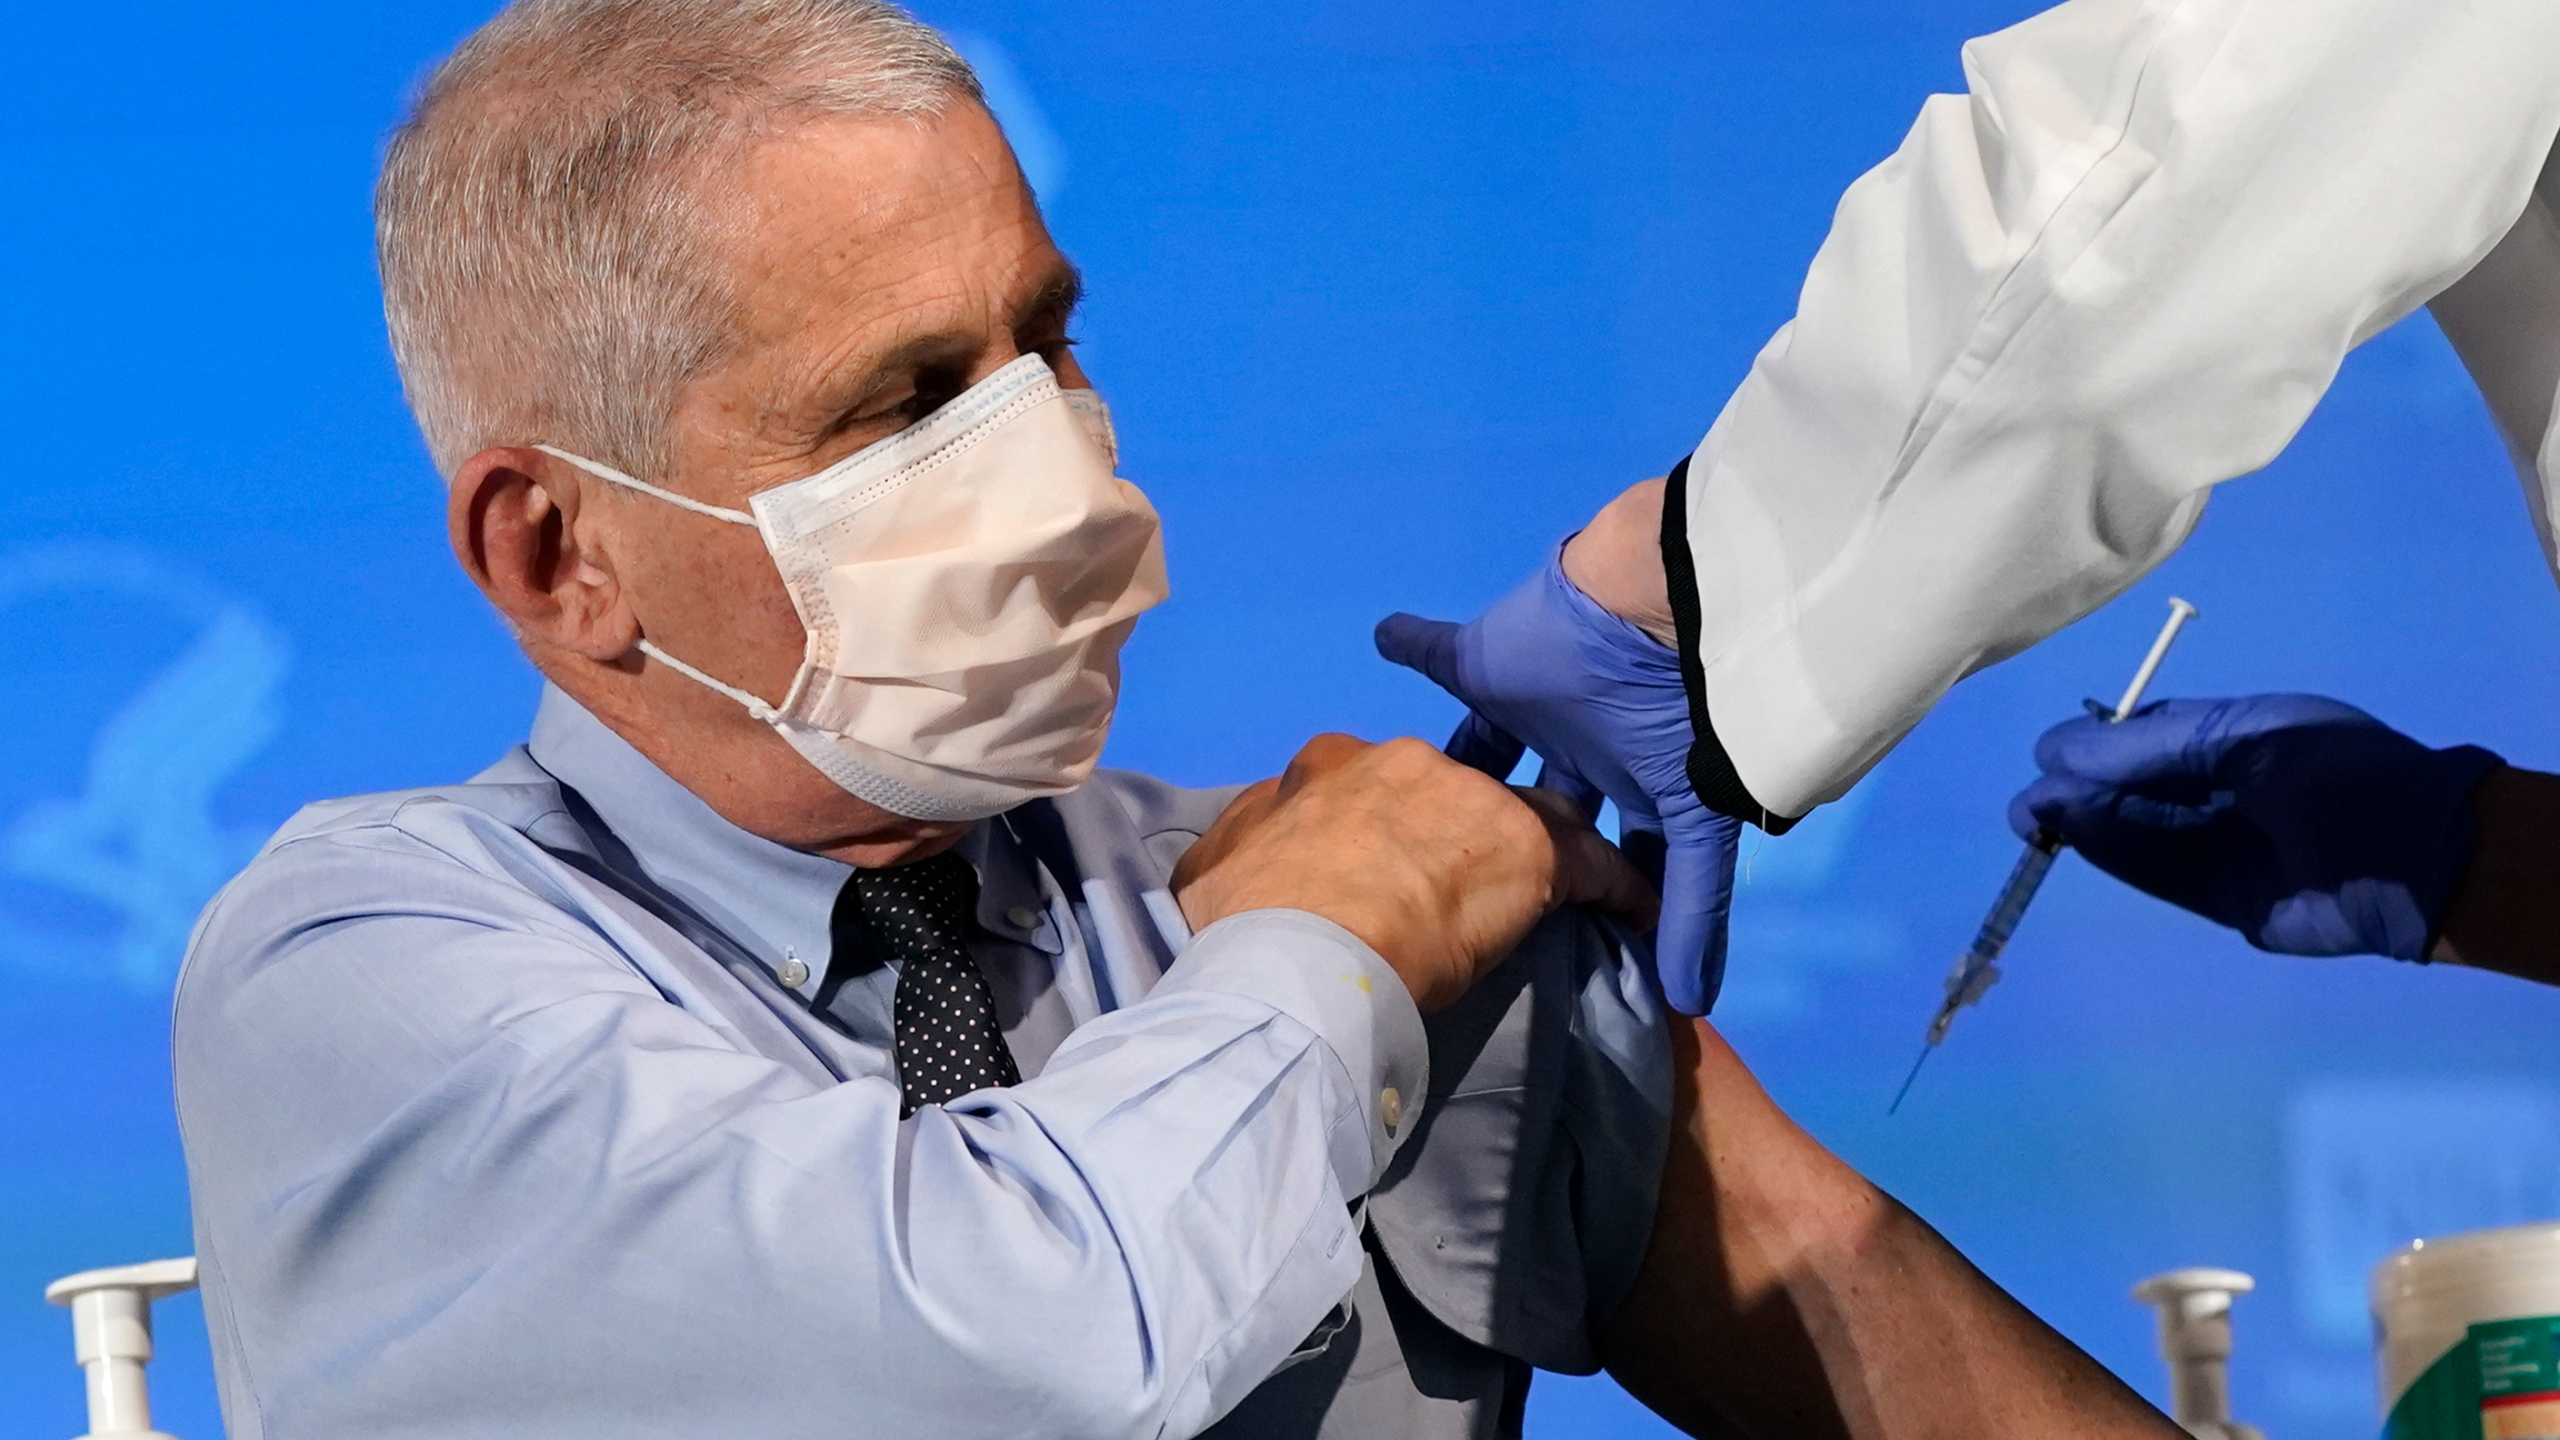 Dr. Anthony Fauci, director of the National Institute of Allergy and Infectious Diseases, prepares to receive his first dose of the COVID-19 vaccine at the National Institutes of Health on December 22, 2020 in Bethesda, Maryland. (Photo by Patrick Semansky-Pool/Getty Images)